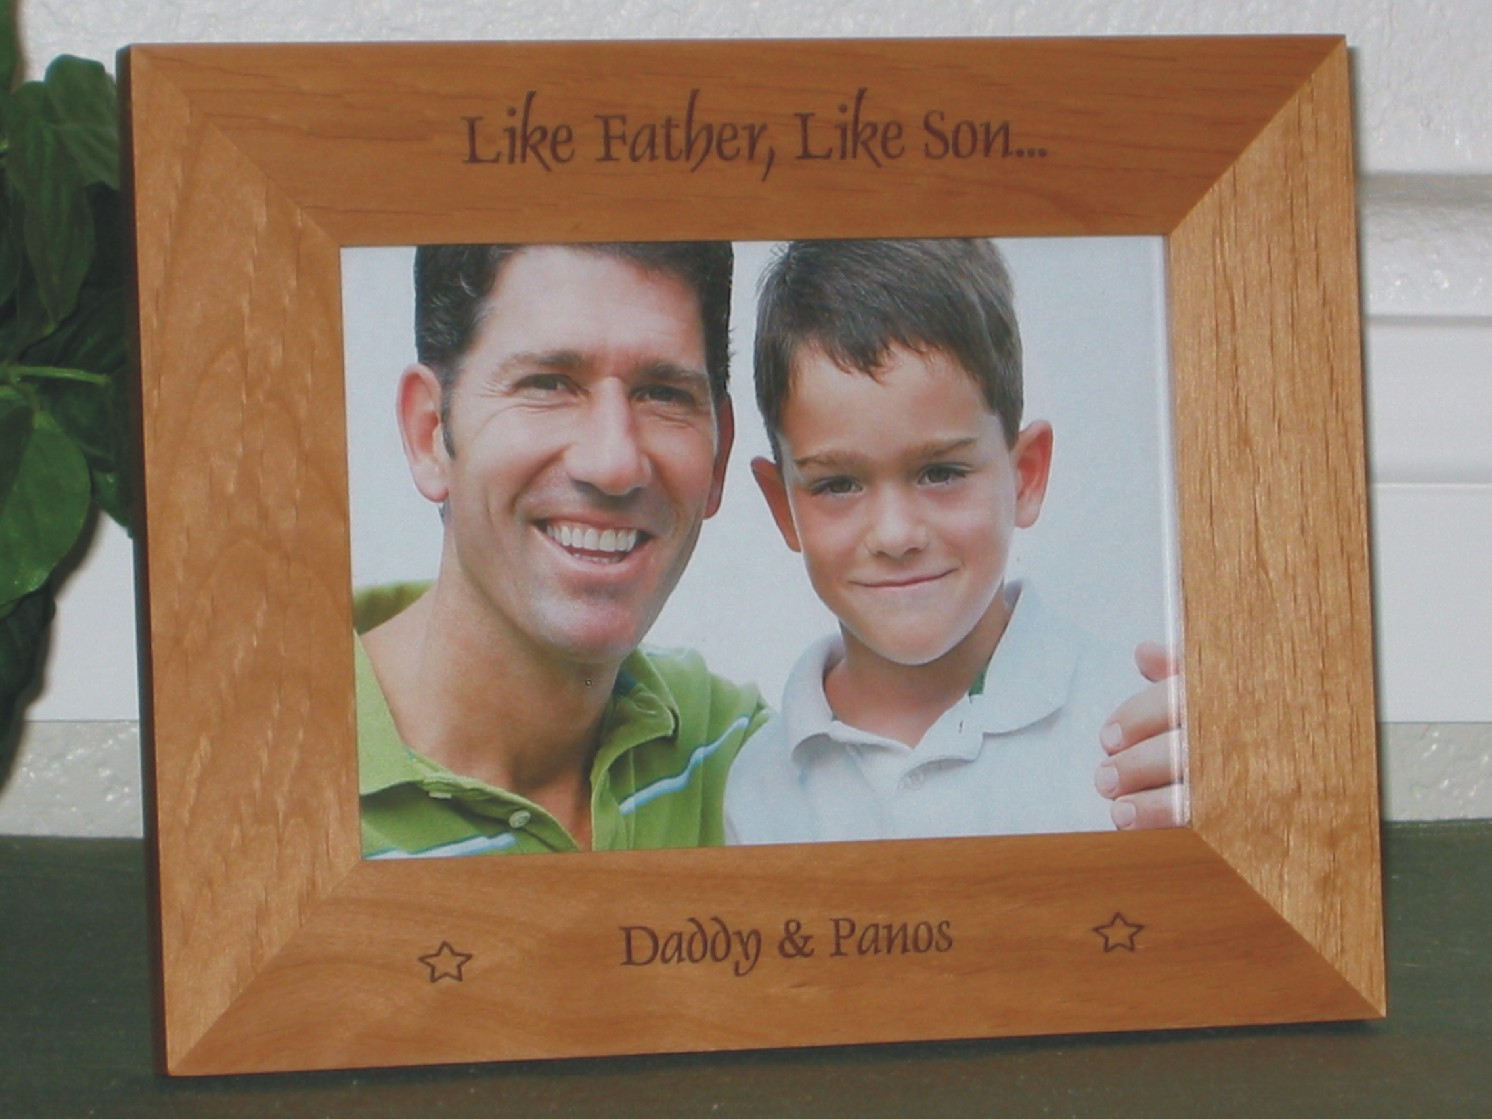 Like Father Like Son Picture Frame Personalized Frame Laser Engraved Stars